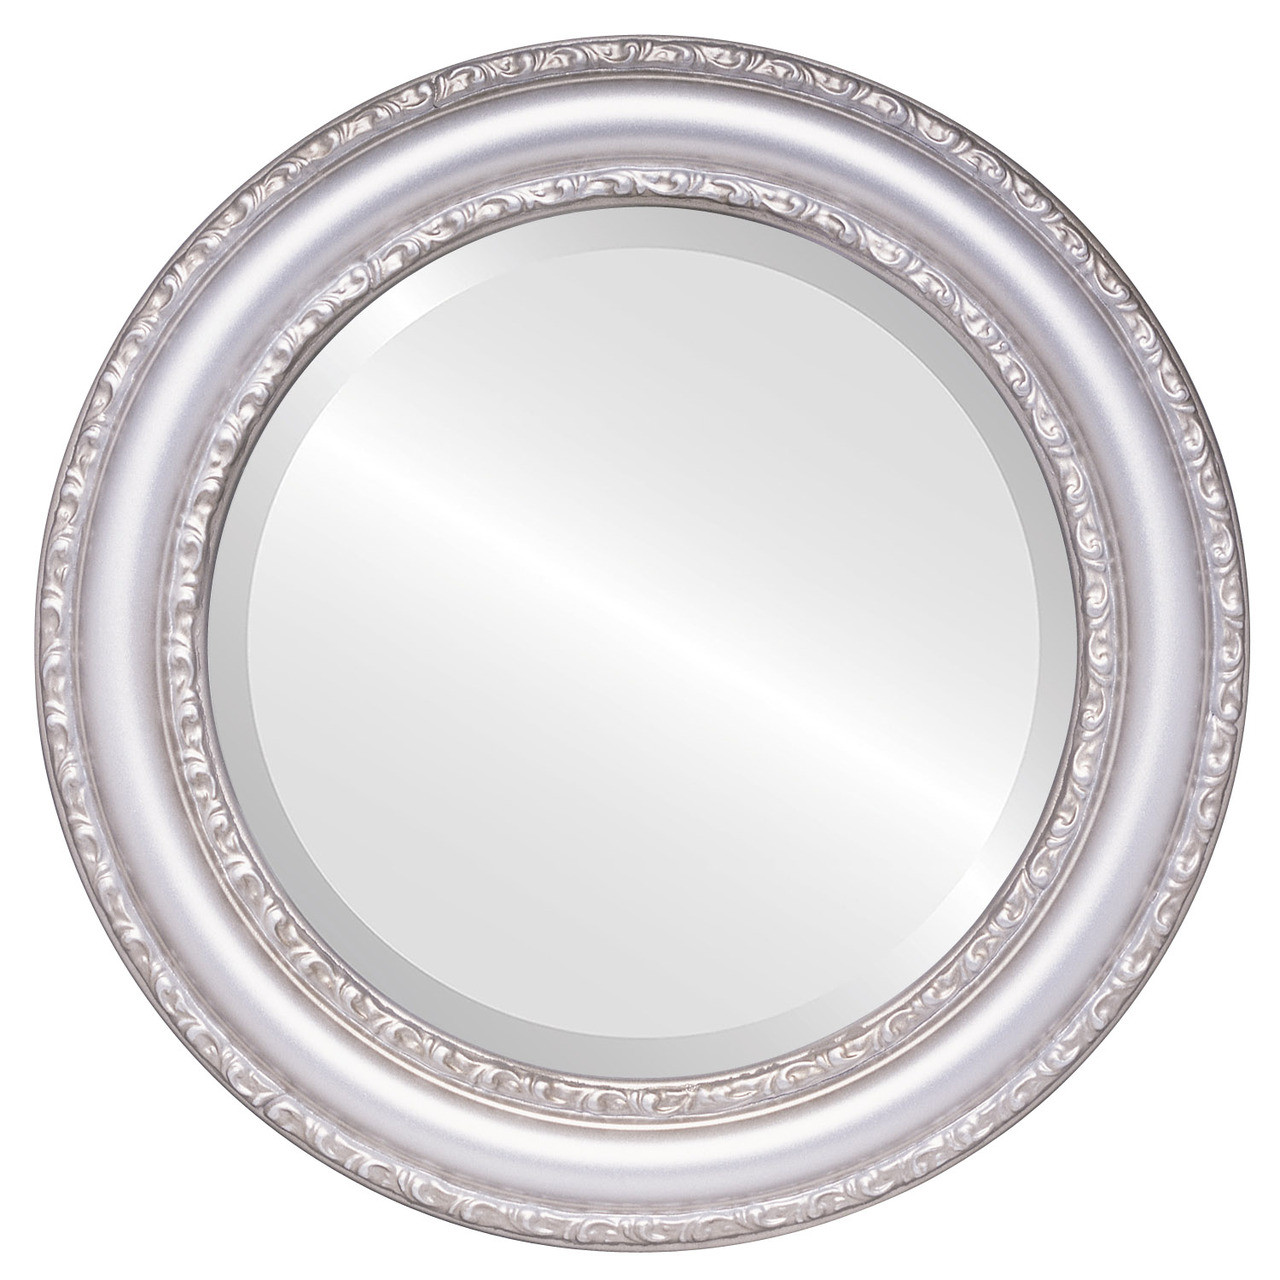 Antique Silver Round Mirrors from $136 | Free Shipping